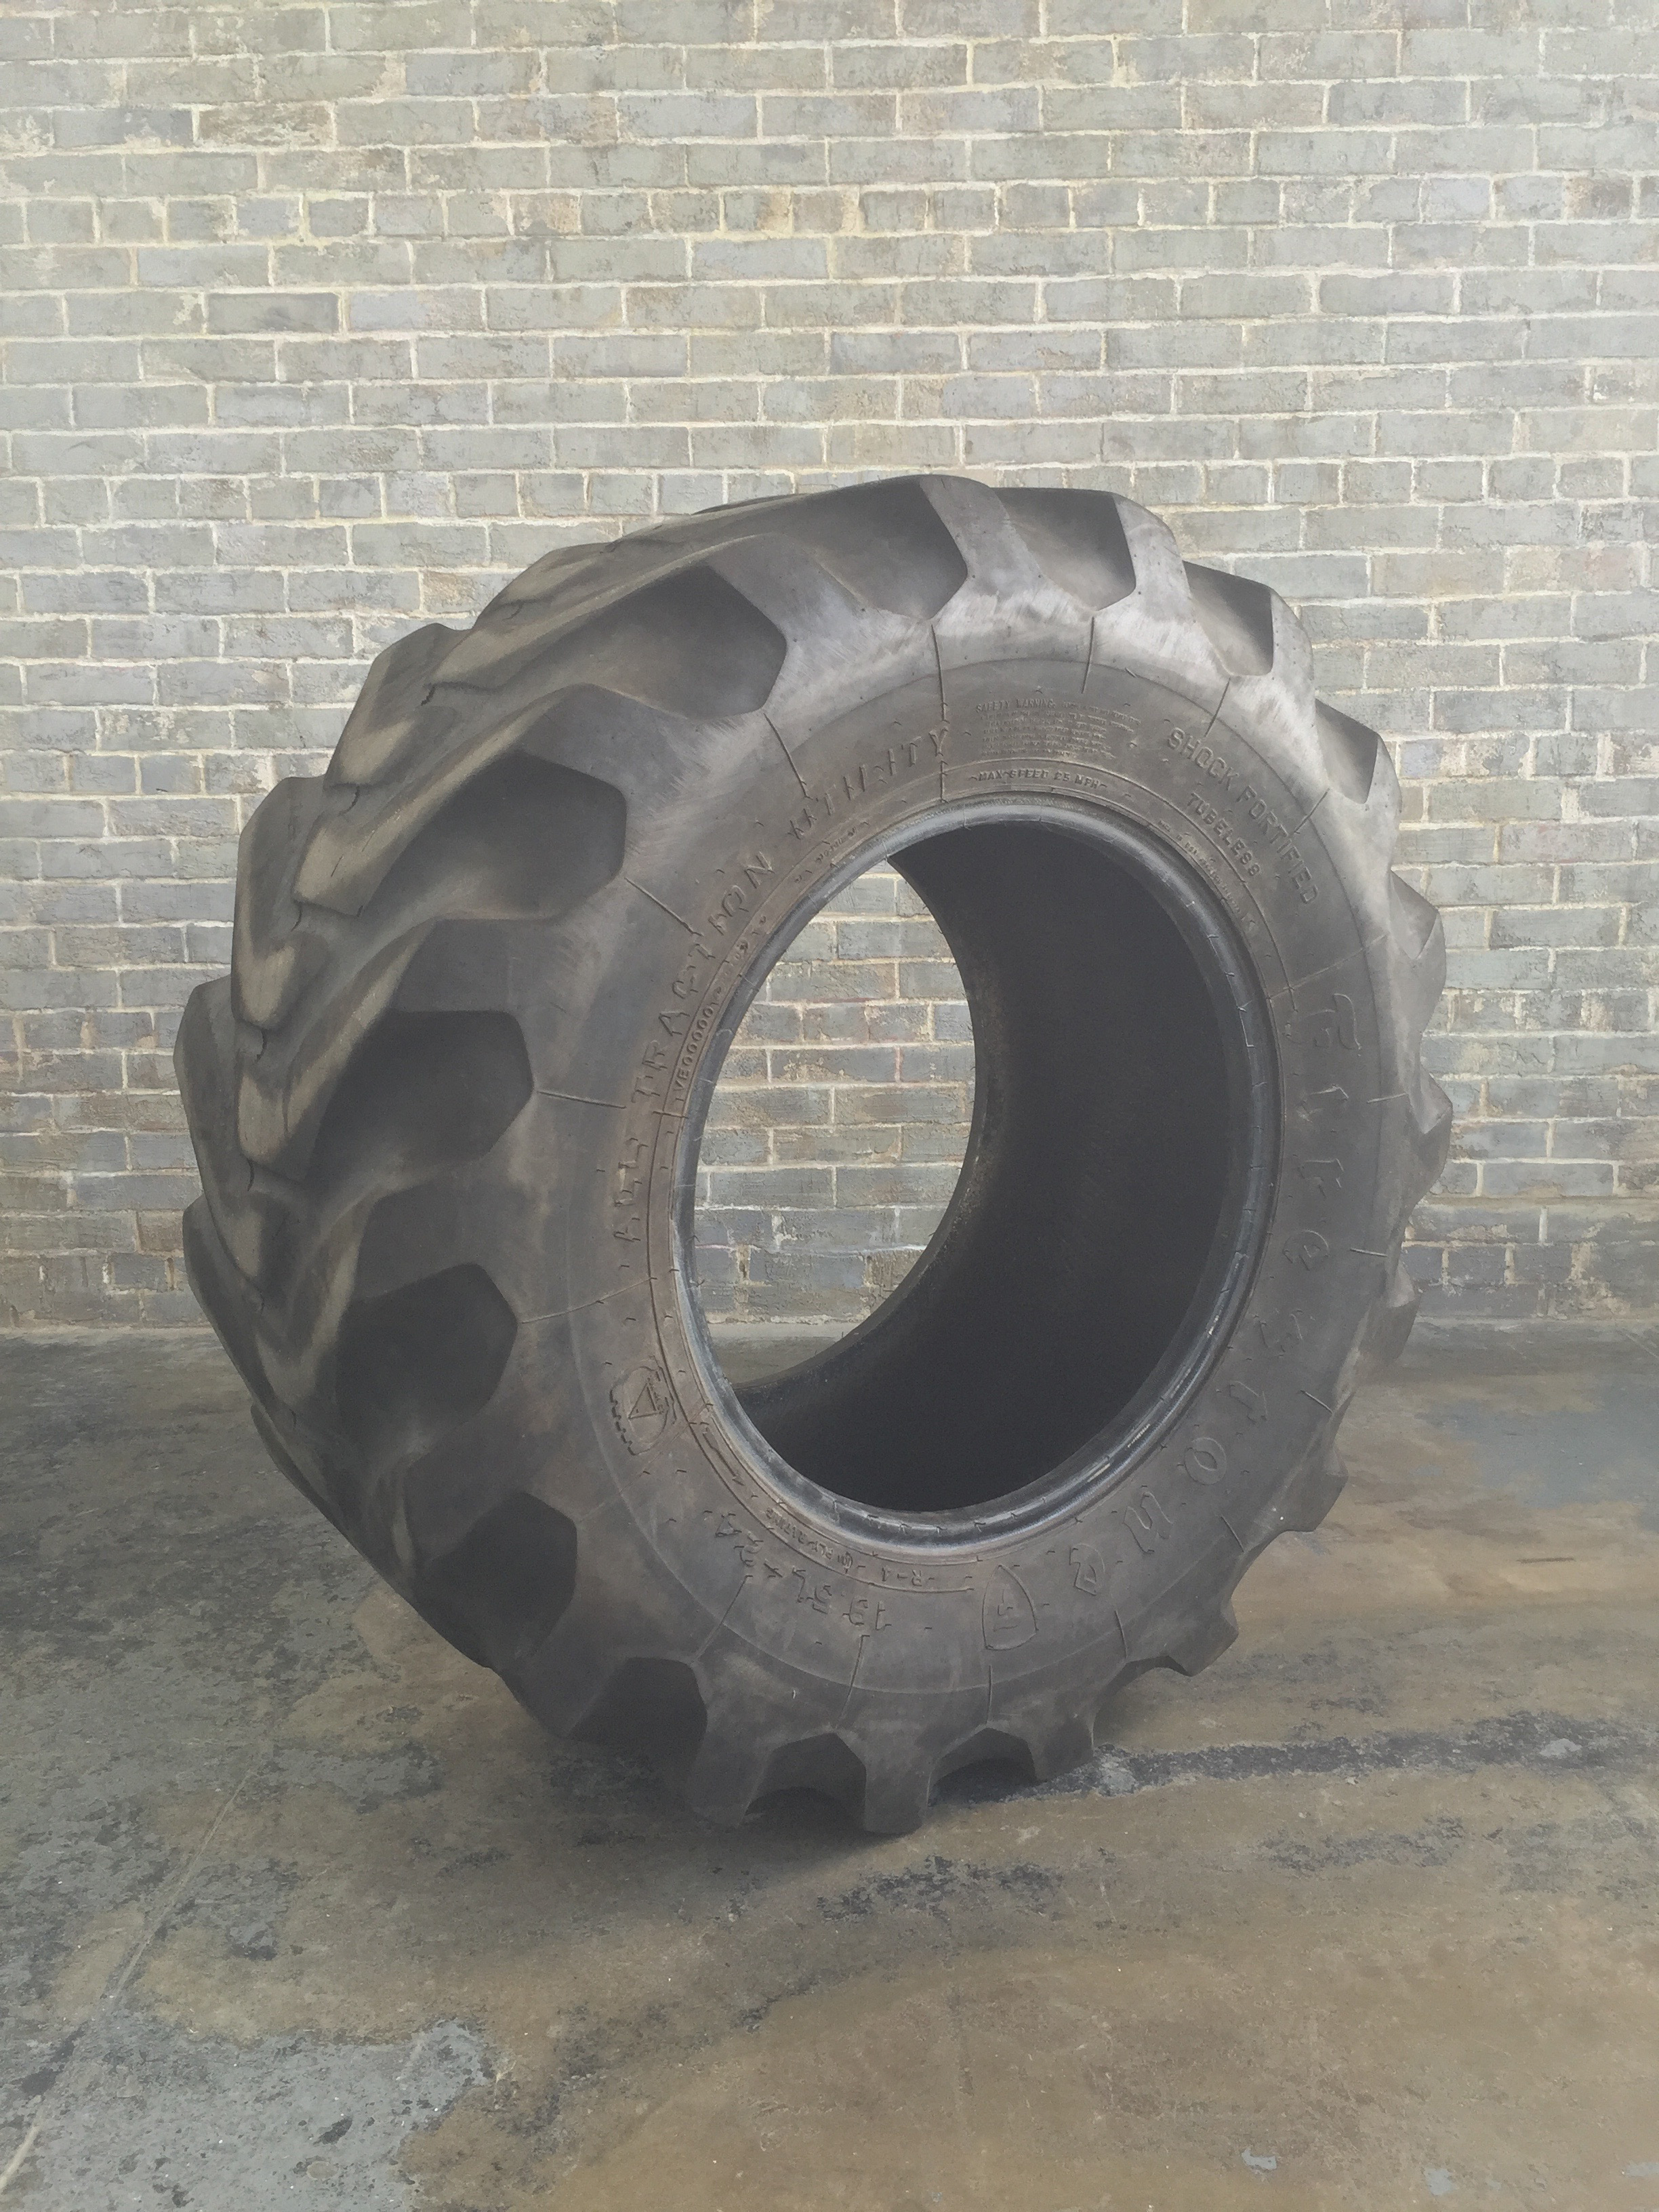 Large Tractor Wheels : Extra large crossfit tractor tires sp